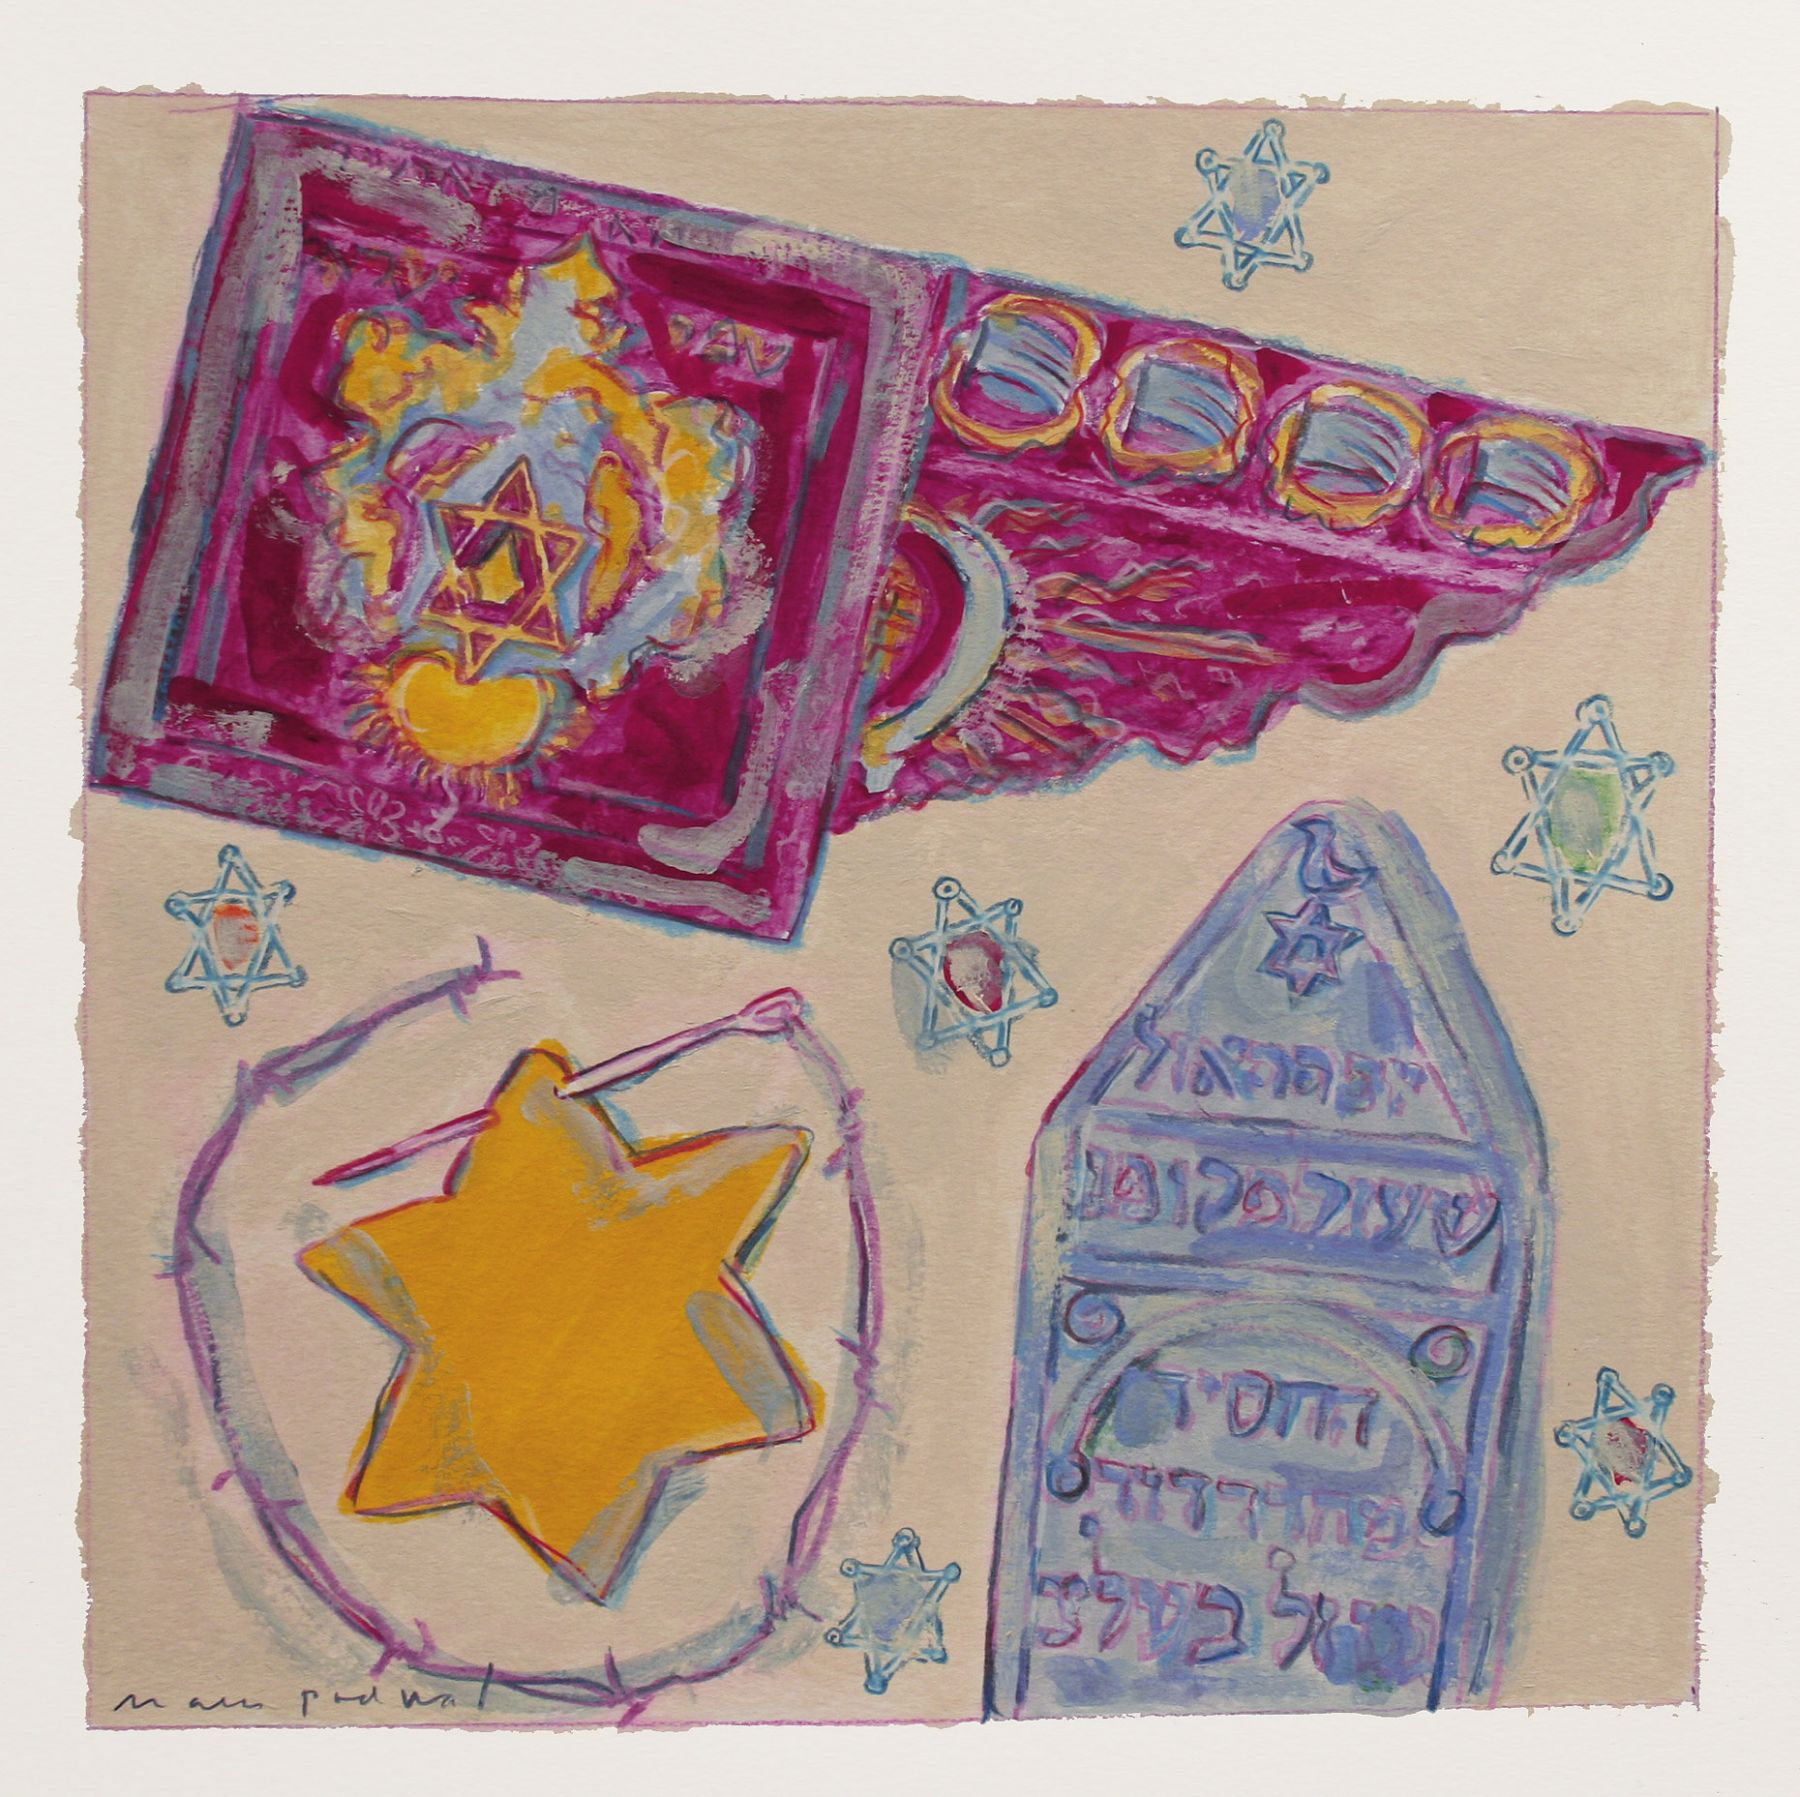 Mark Podwal, Stars of David, 2008, acrylic, gouache and colored pencil on paper, 12 x 12 inches